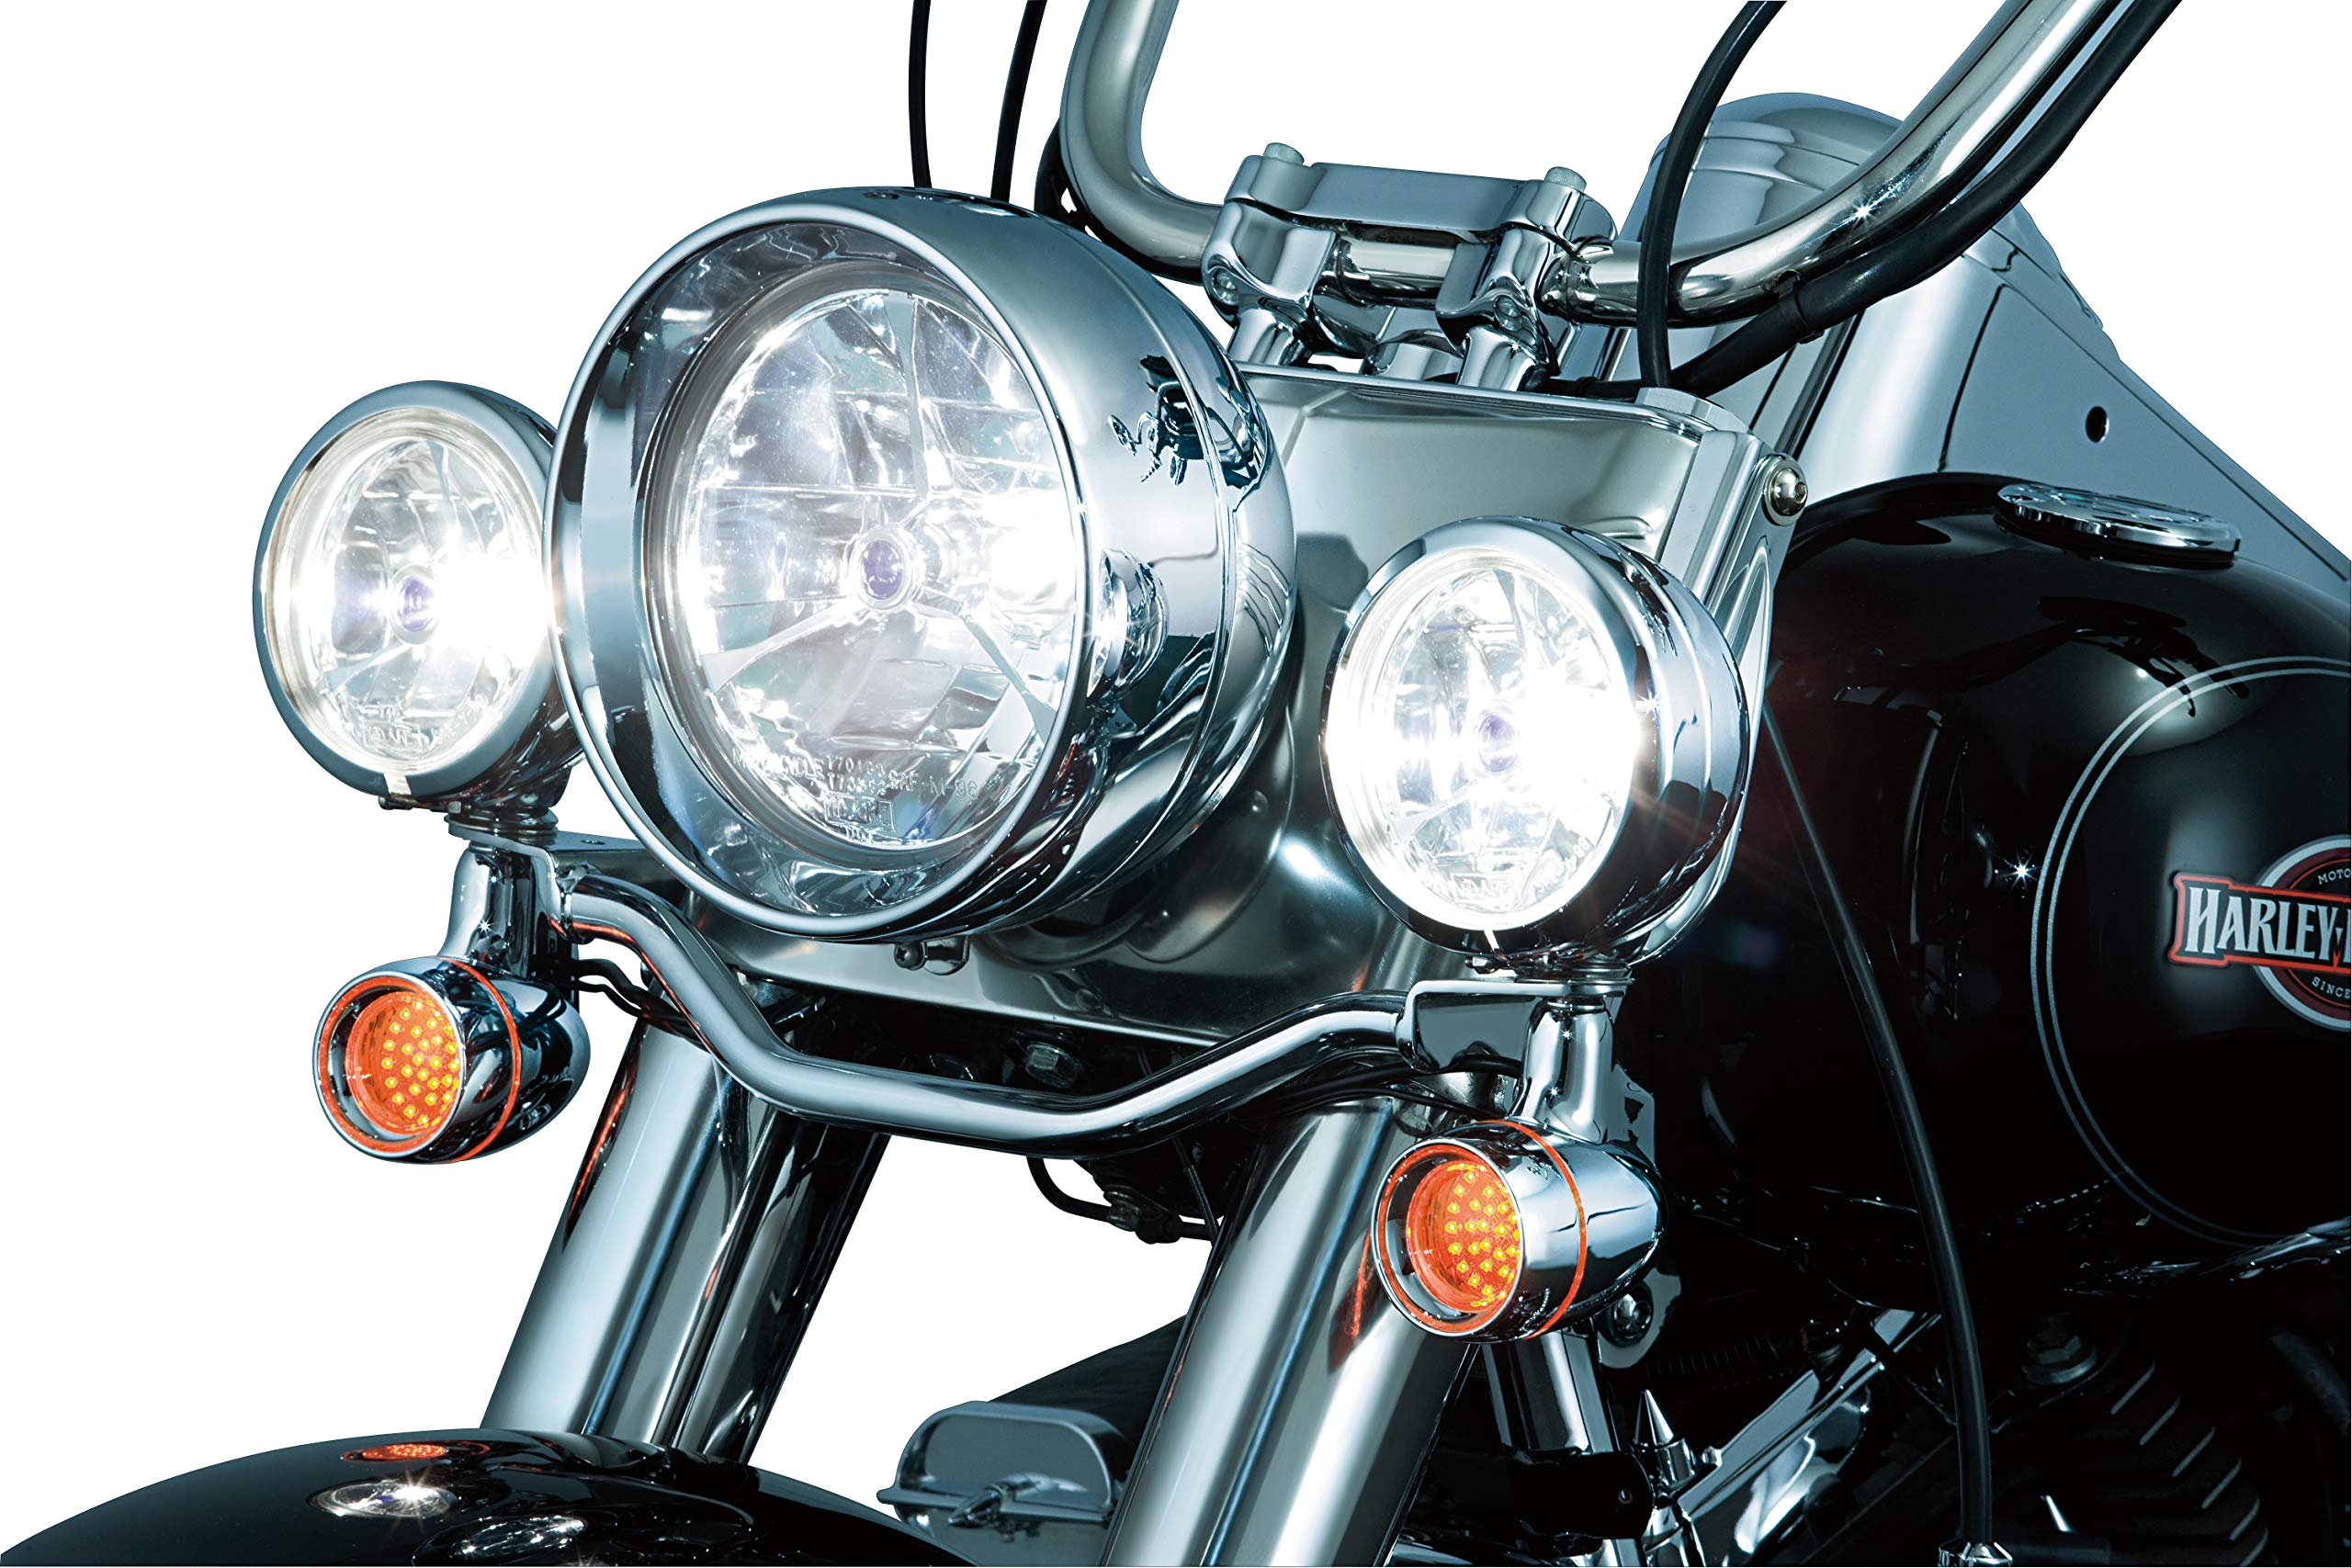 Chrome Kuryakyn 3162 Motorcycle Accent Accessory Curved License Plate Holder Frame on Bullet Style Light Bar for 1986-2019 Harley-Davidson Motorcycles